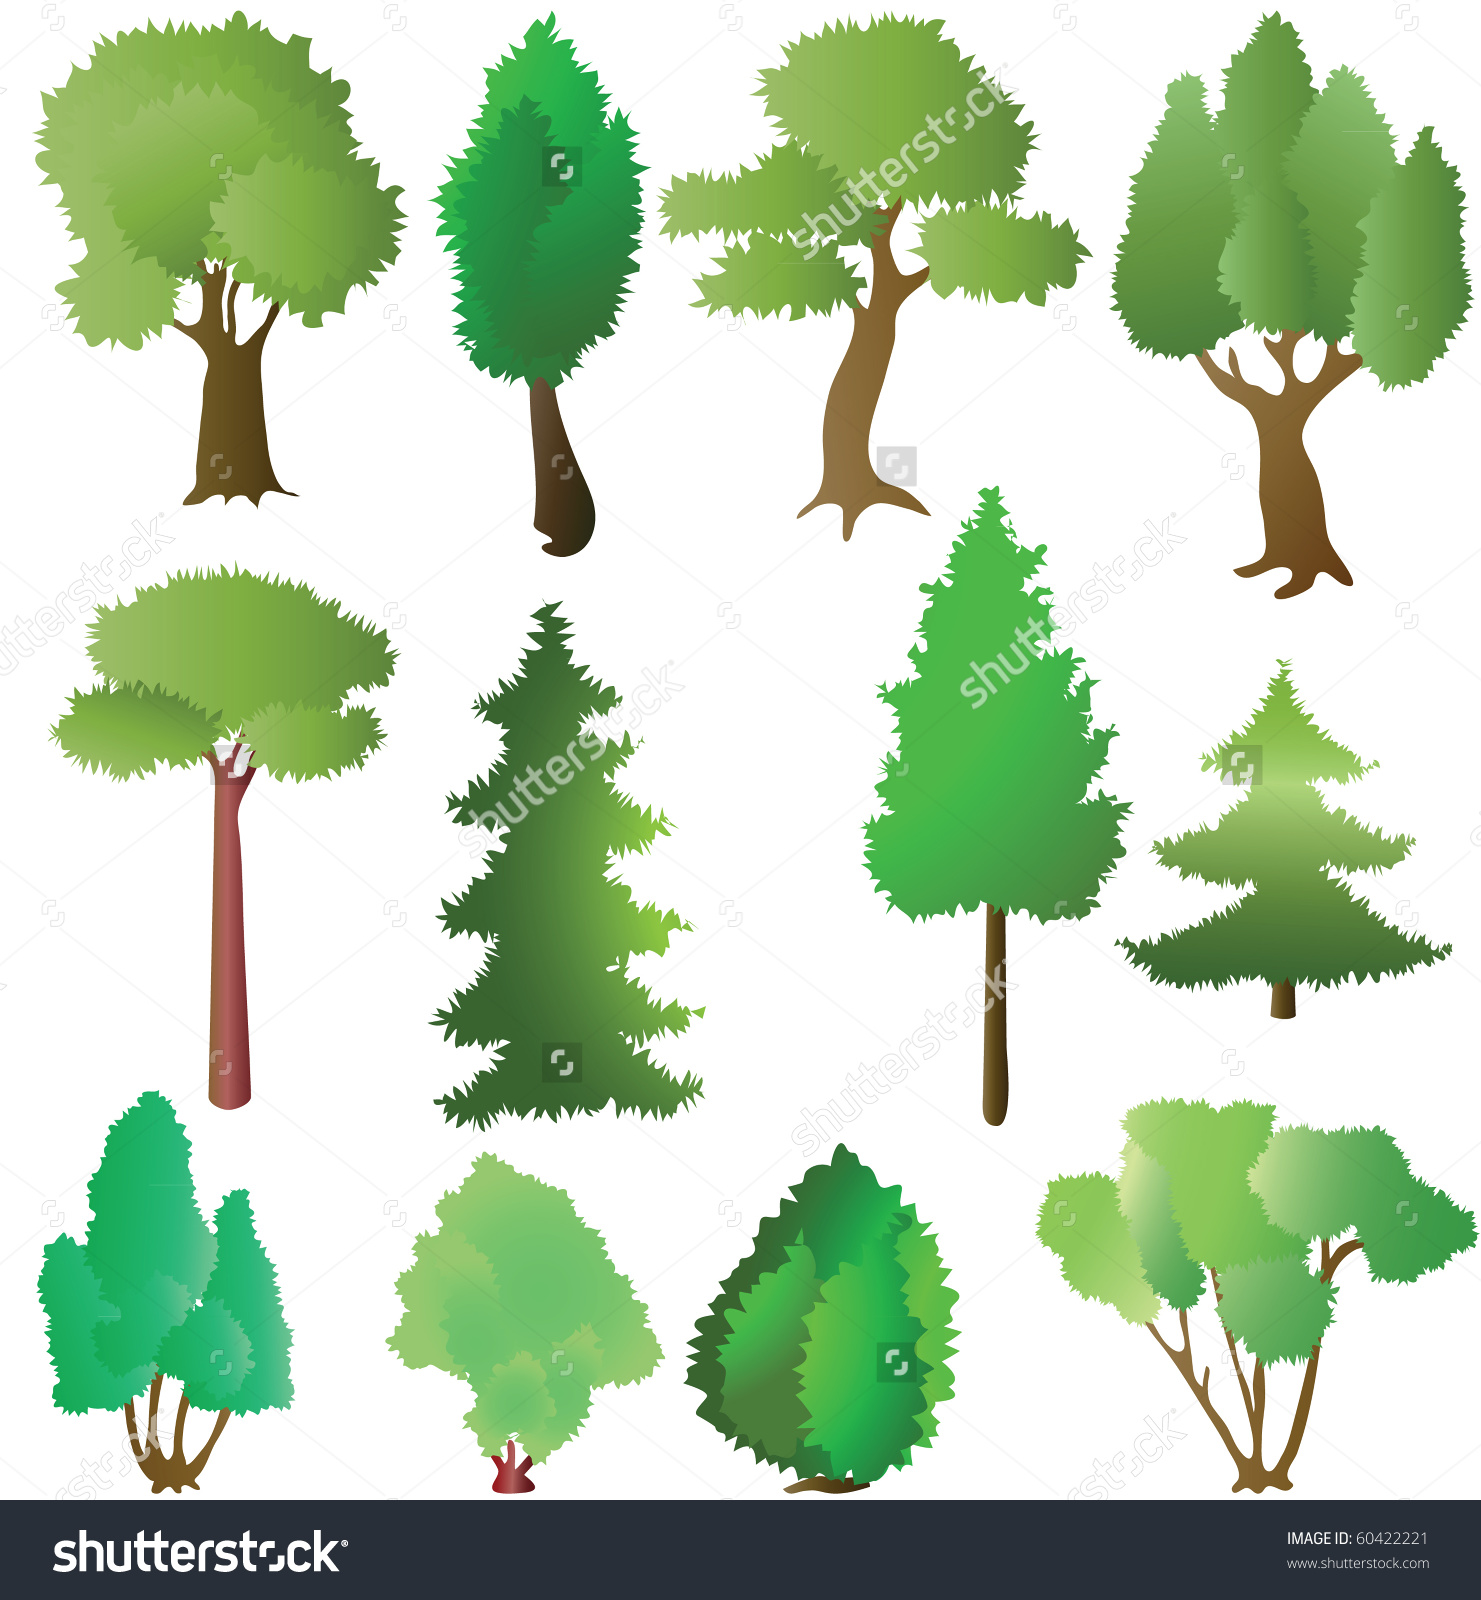 Deciduous And Coniferous Trees In The Summer. Vector Illustration.